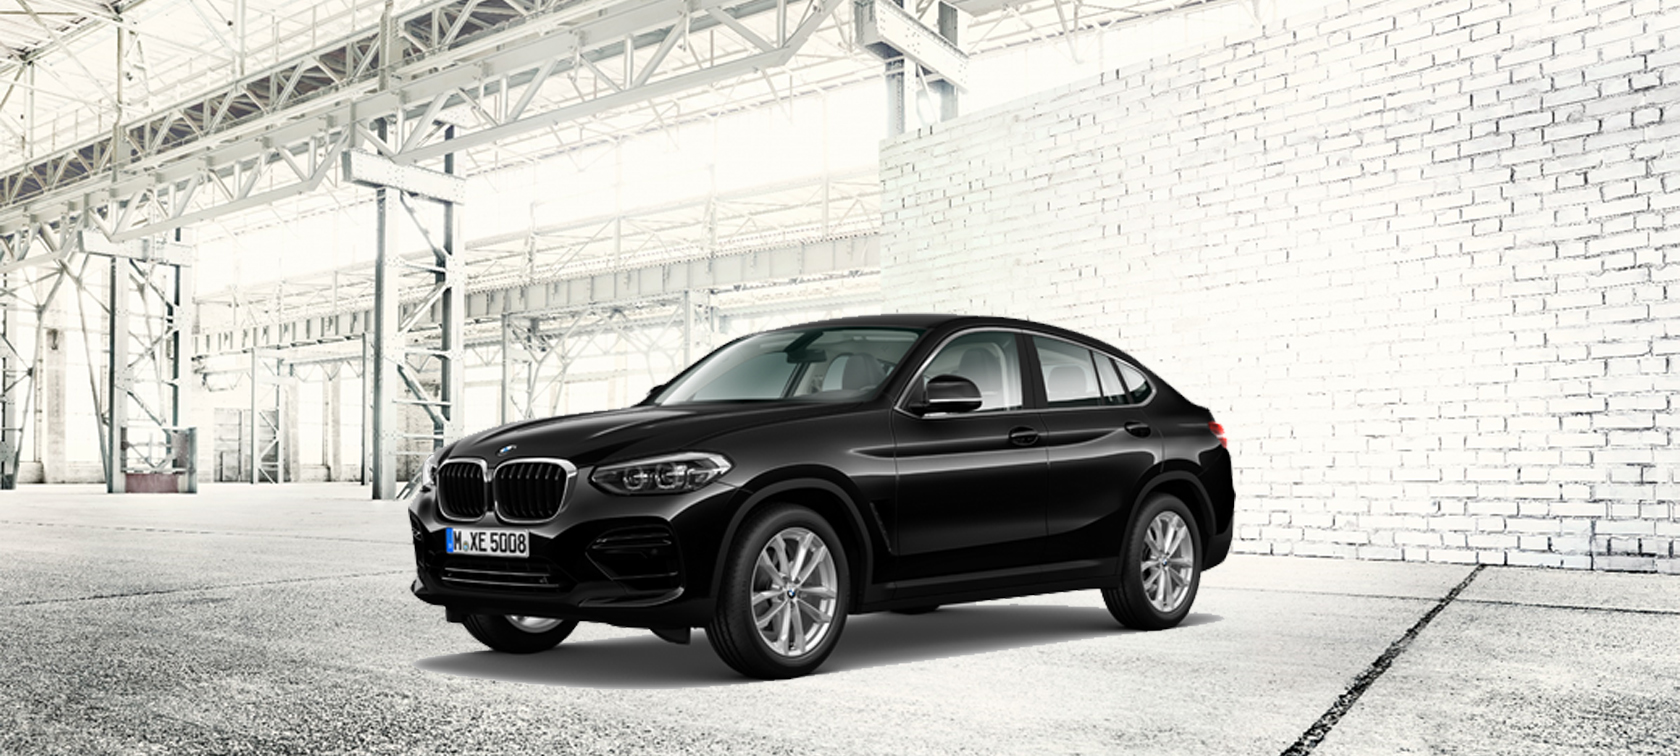 BMW X4 xDrive20d, Finition Business Design.